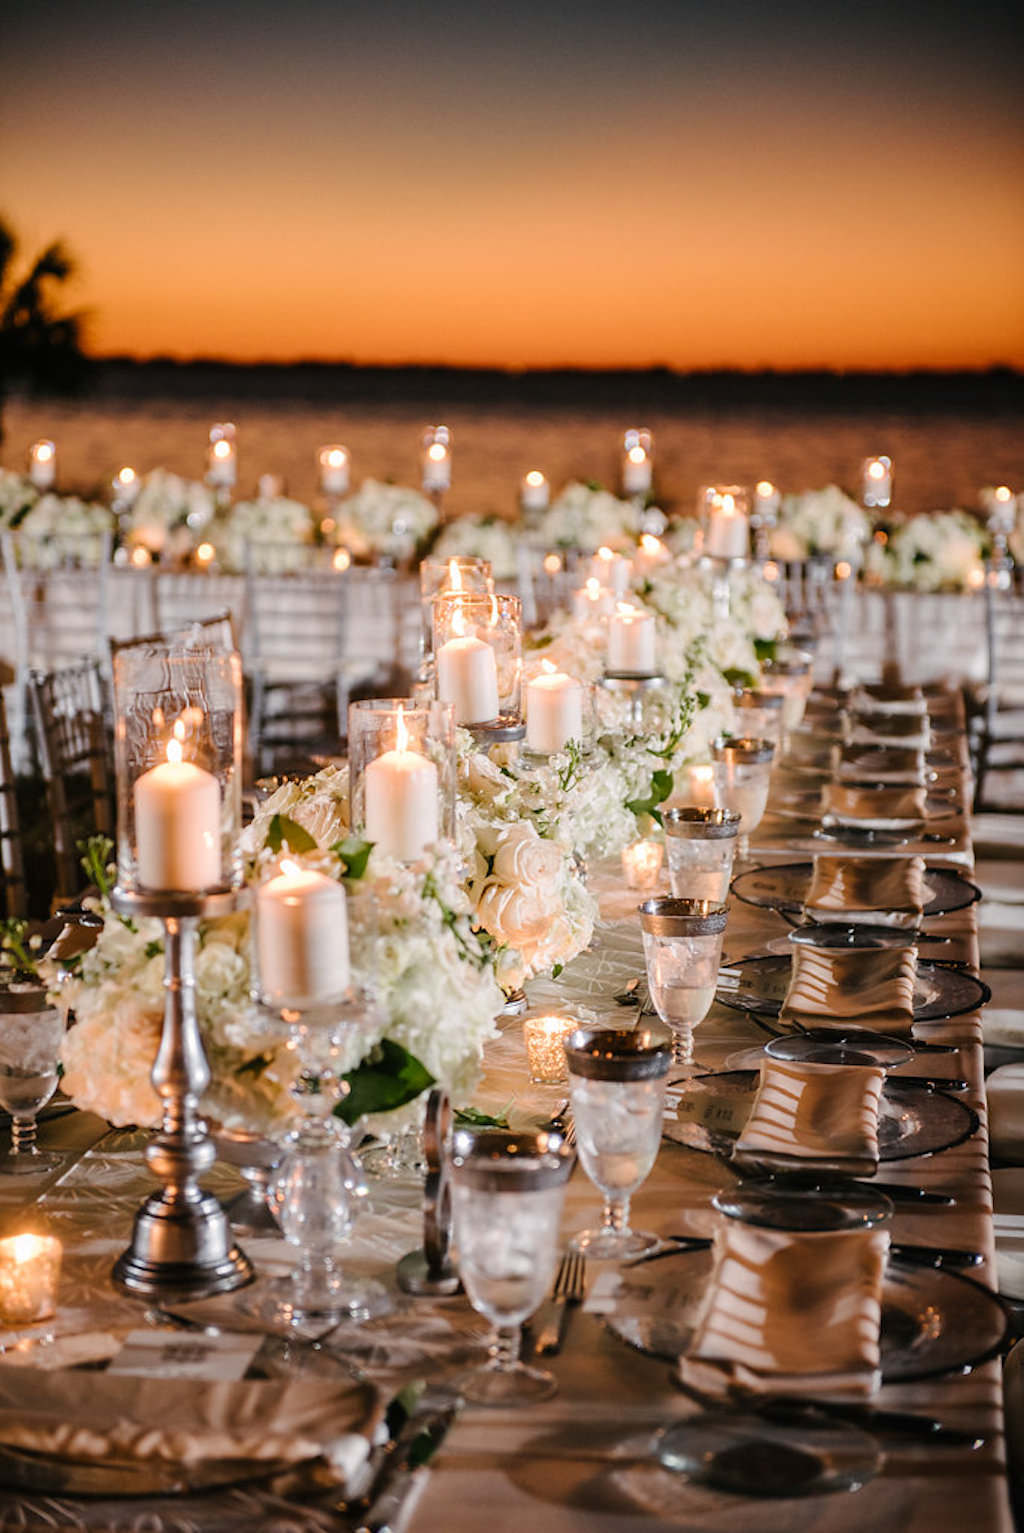 Outdoor Waterfront Sunset Wedding Reception with Long Feasting Tables with Champagne Satin Linens, Low White Floral and Greenery Centerpieces and Silver Candlestickholders and PIllar Candles | Tampa Bay Waterfront Historic Venue Crosley Powel Estate